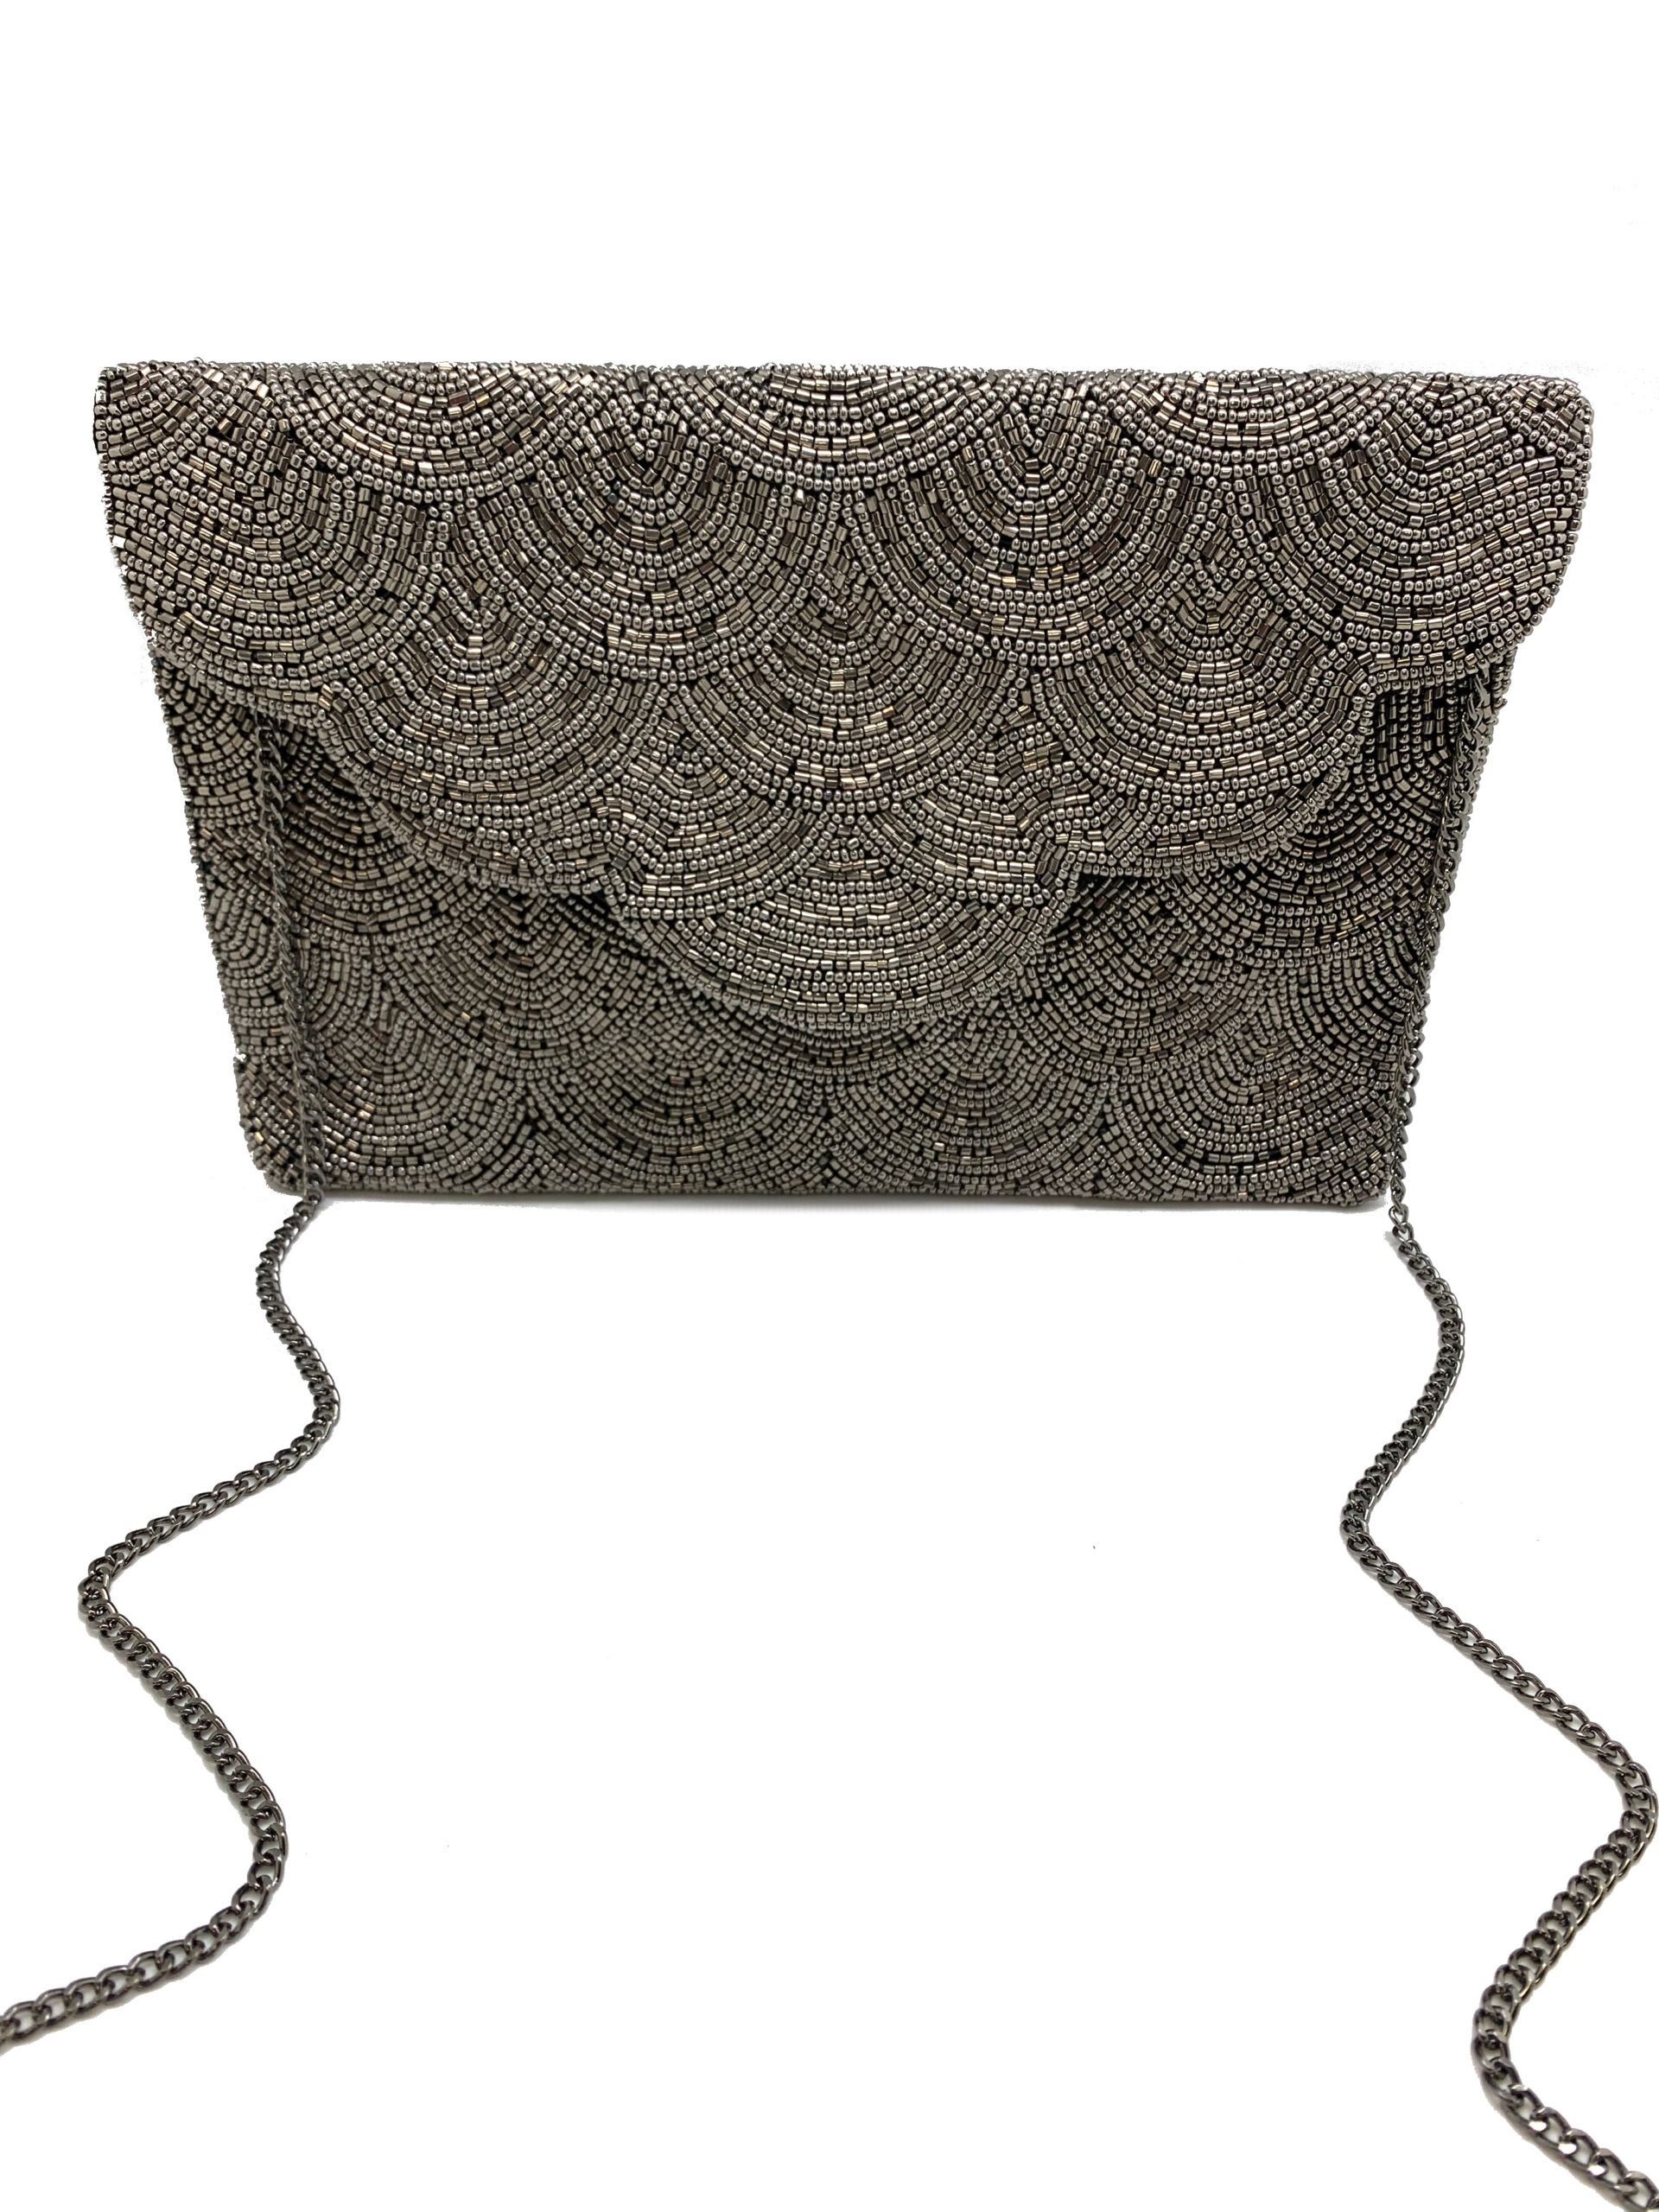 SCALLOPED HEMATITE BEADED CLUTCH